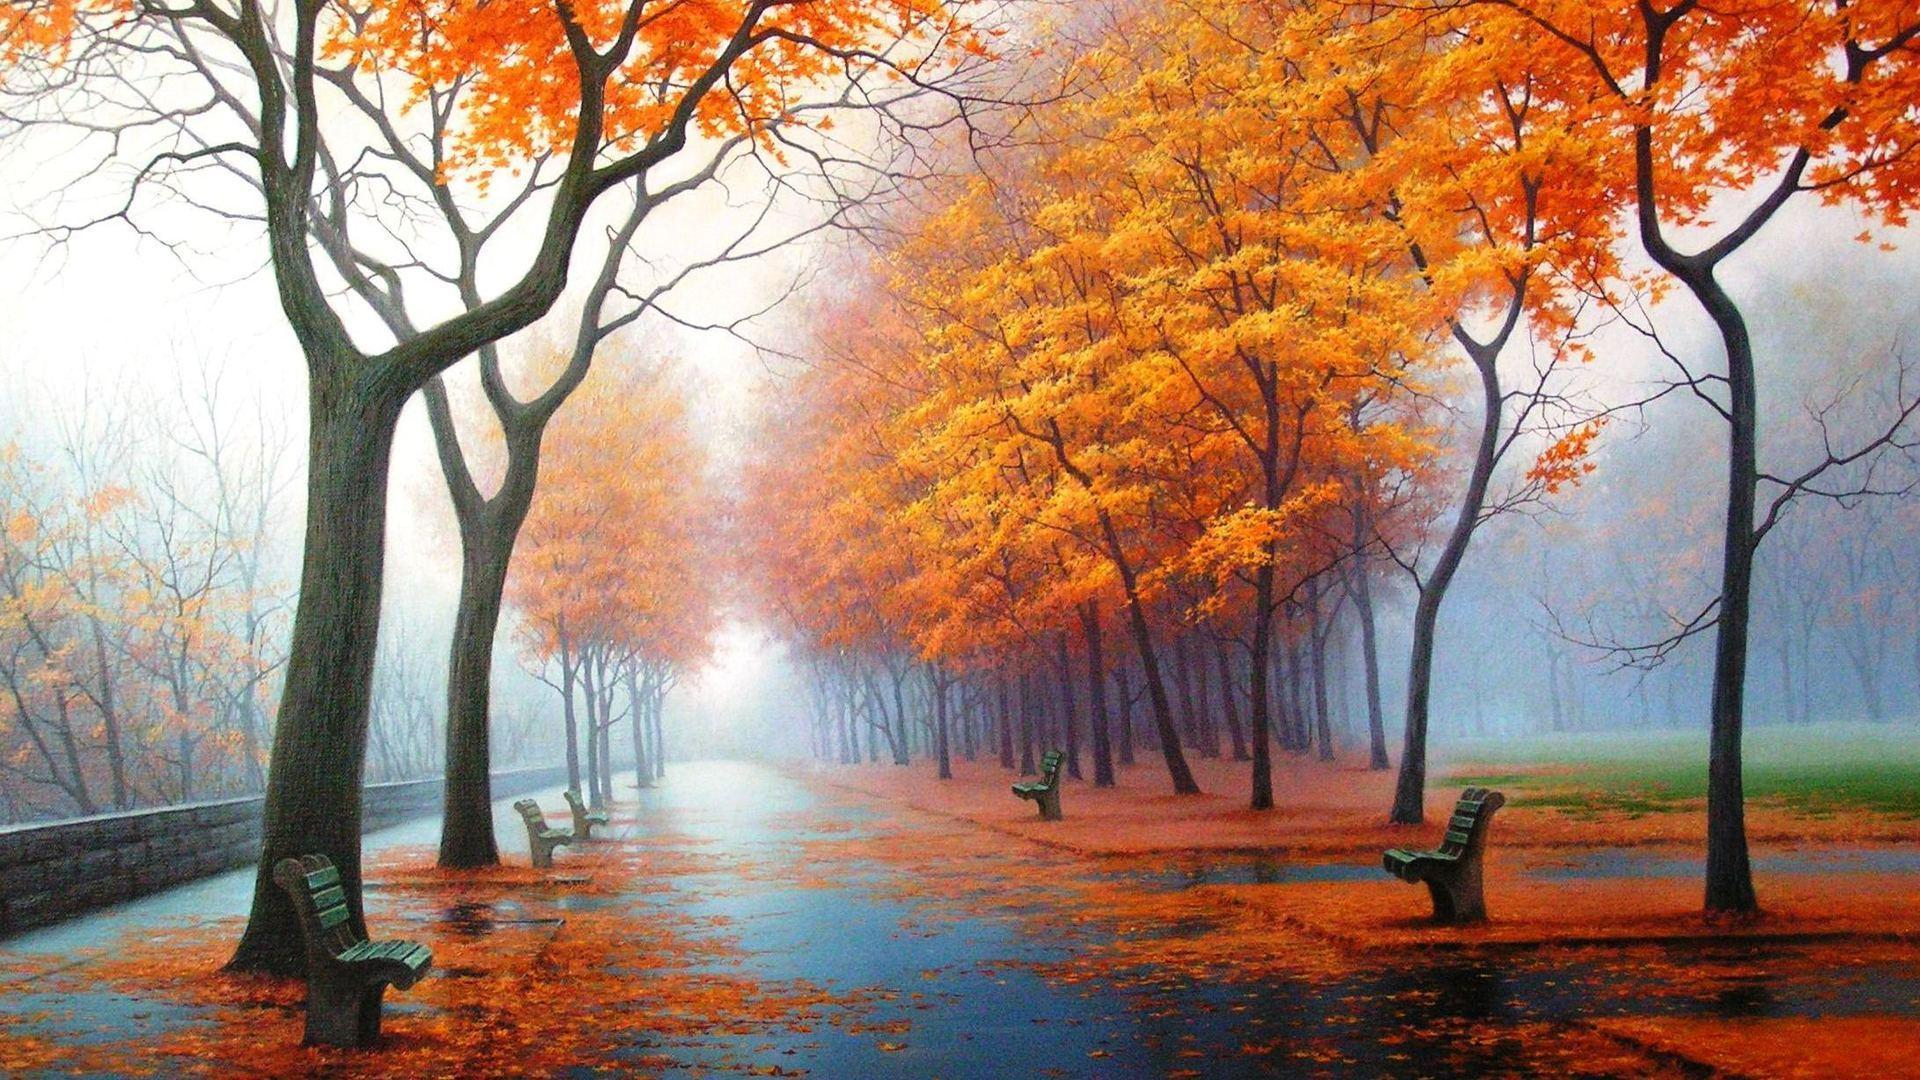 Wallpaper Fall Pictures – Captivating Wallpaper Designs and Colorful Images